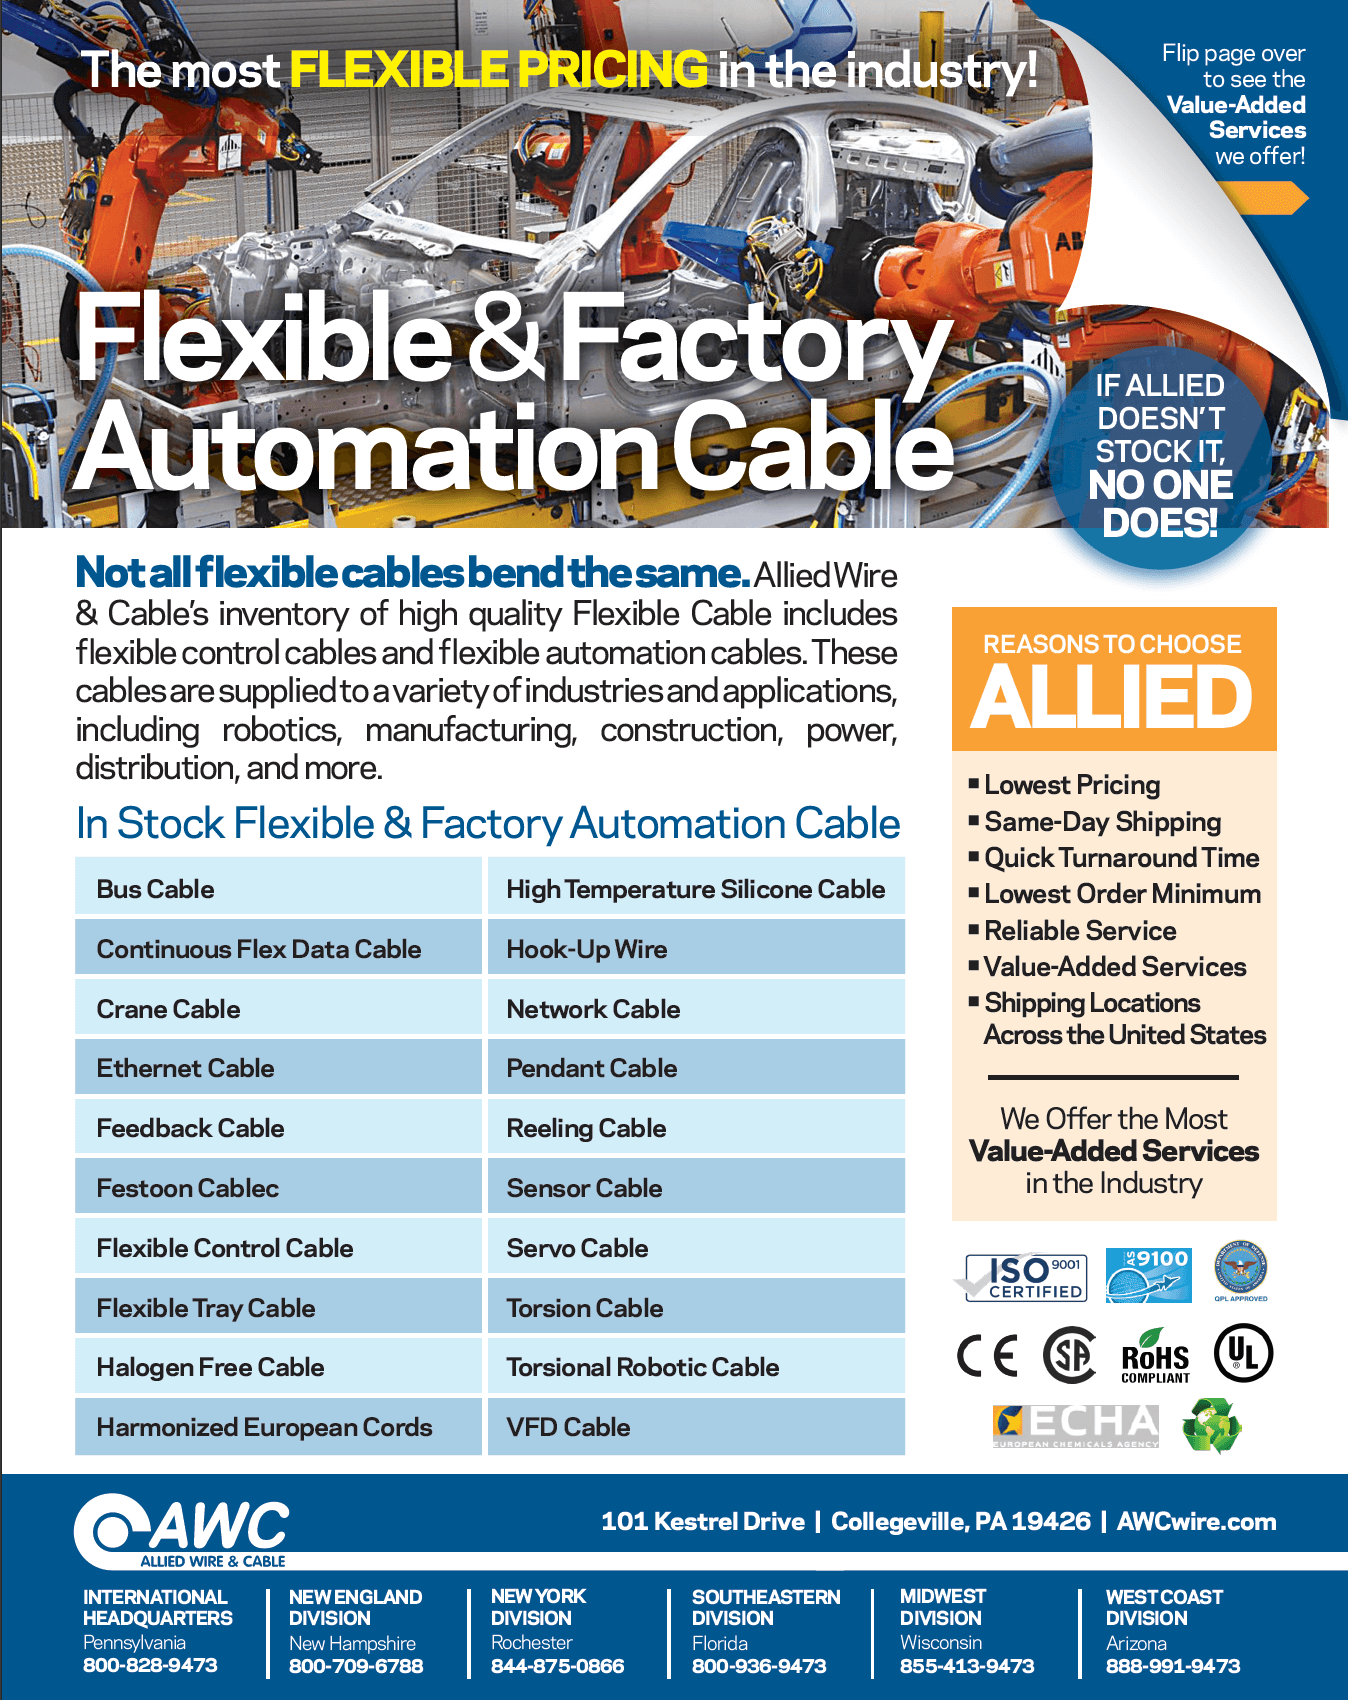 Automation Cable from Allied Wire & Cable